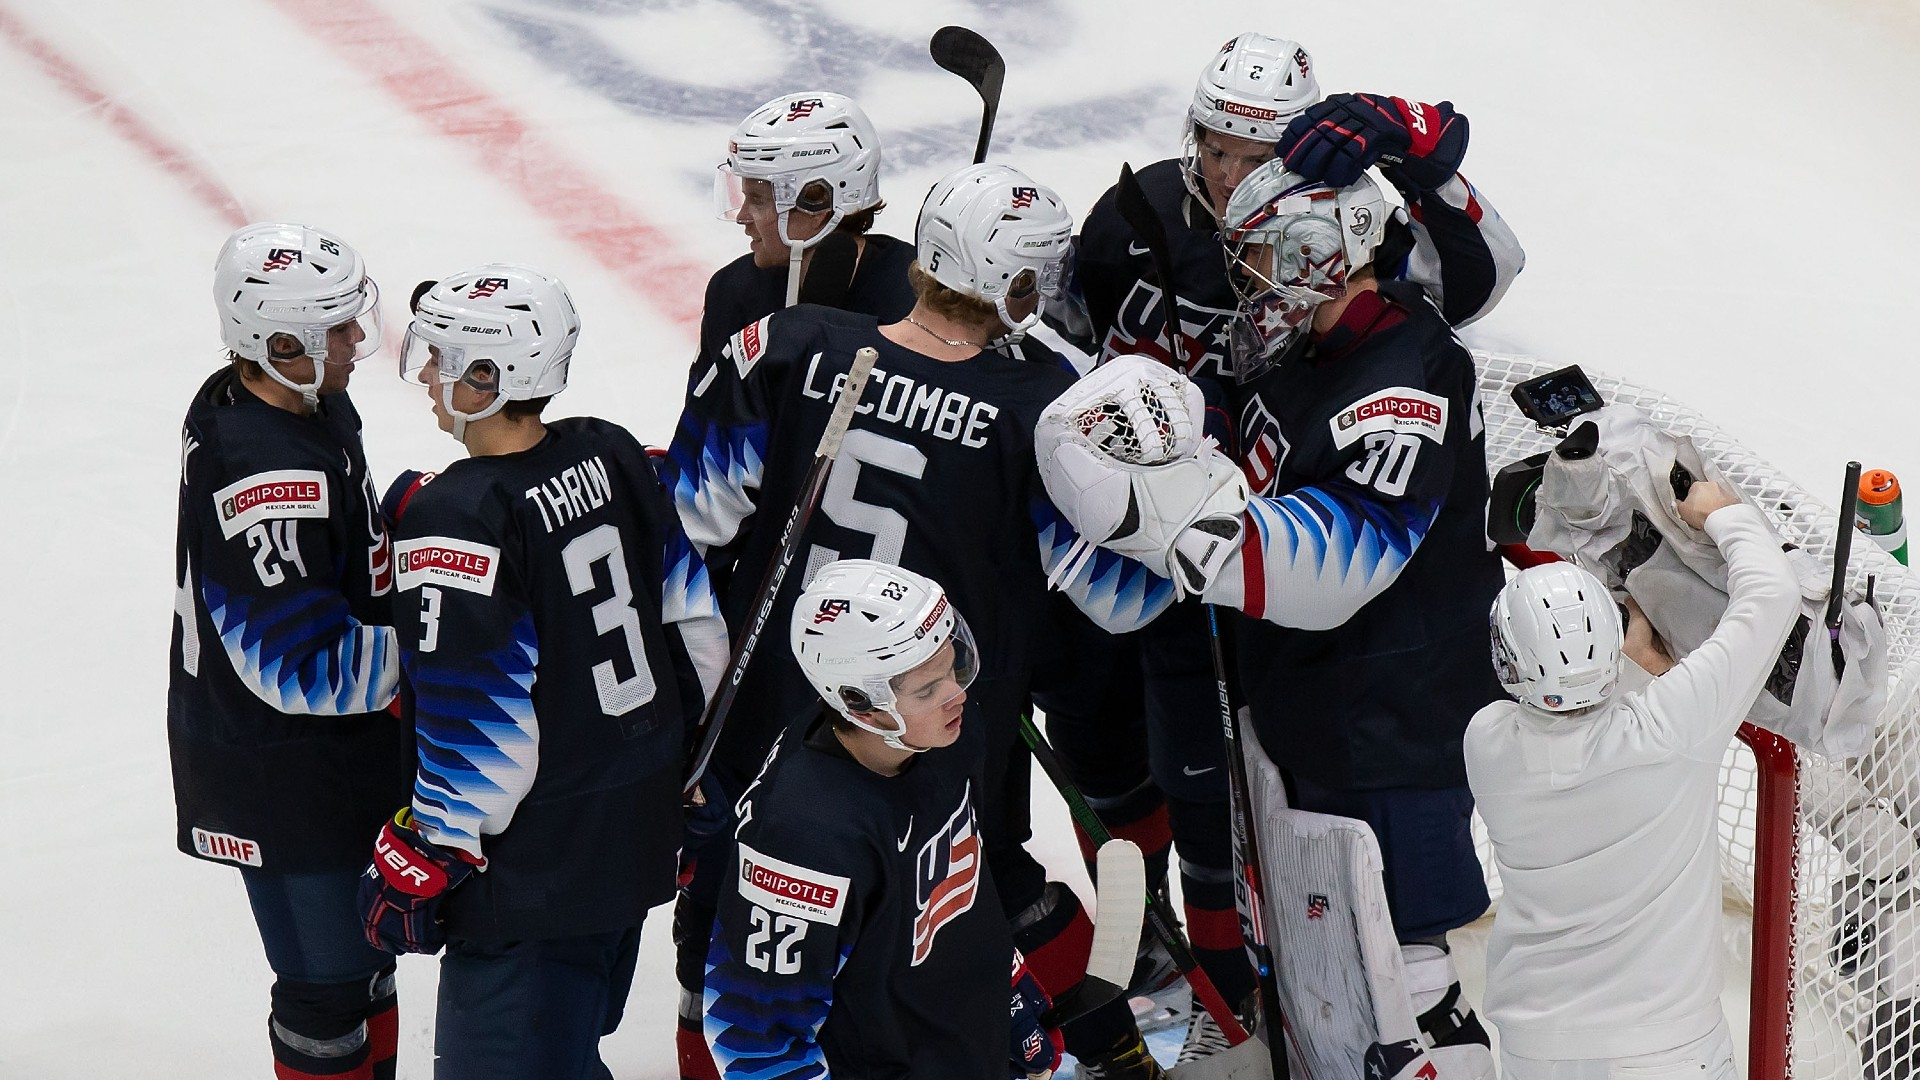 USA vs. Slovakia results: Americans get a scare but hold on for semifinal berth at 2021 World Juniors